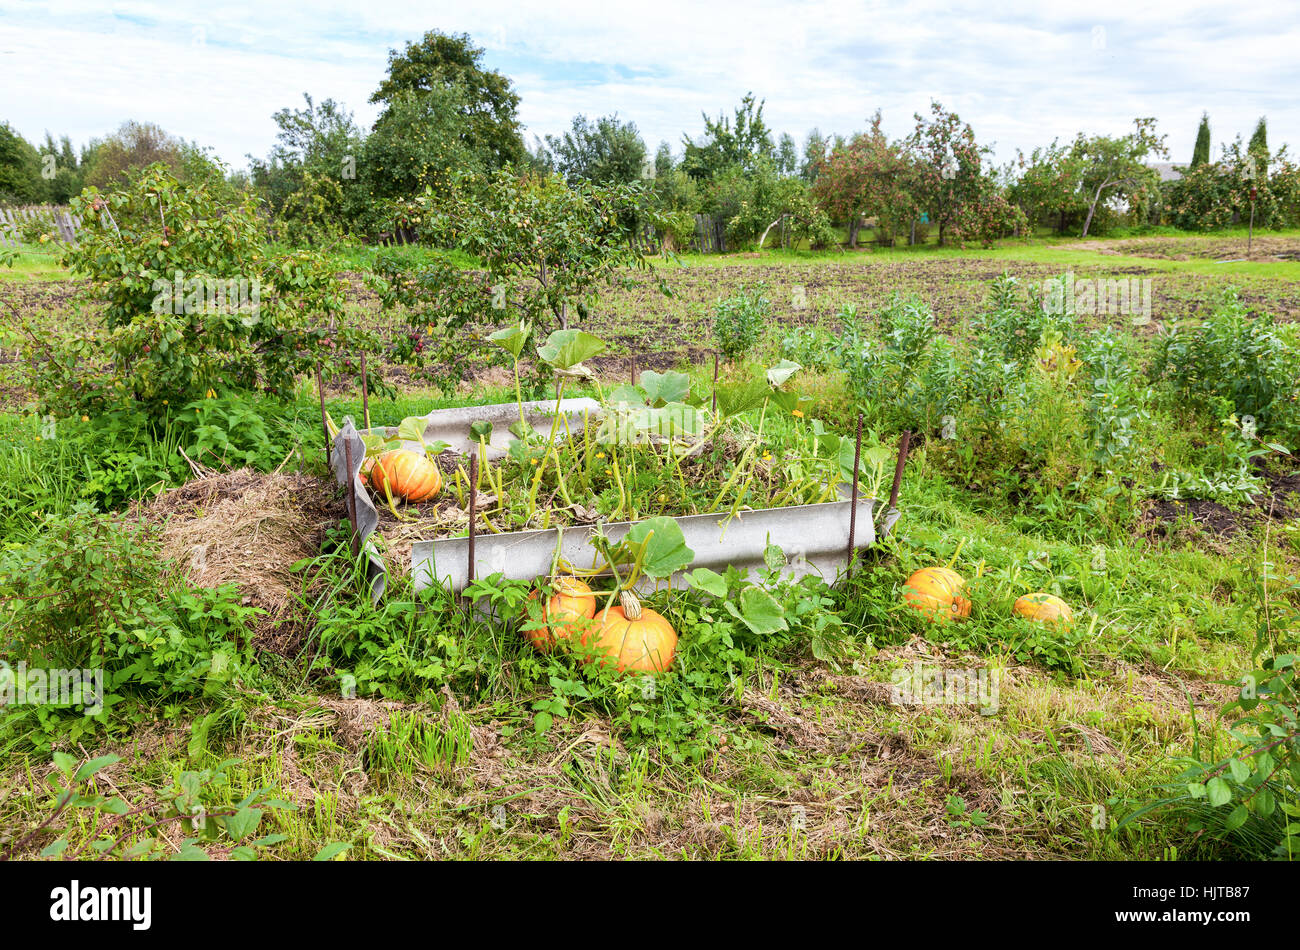 Orange pumpkins with big green leaves growing on the vegetable patch - Stock Image